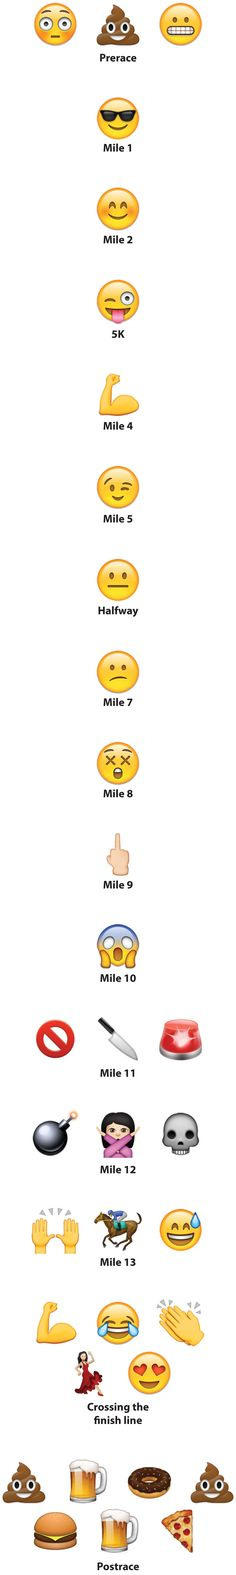 Running a Half Marathon as Told by Emojis  http://www.runnersworld.com/half-marathon/running-a-half-marathon-as-told-by-emojis?cid=soc_runnersworld_TWITTER_Runner%25E2%2580%2599s%2520World__Motivation_HalfMarathonTraining